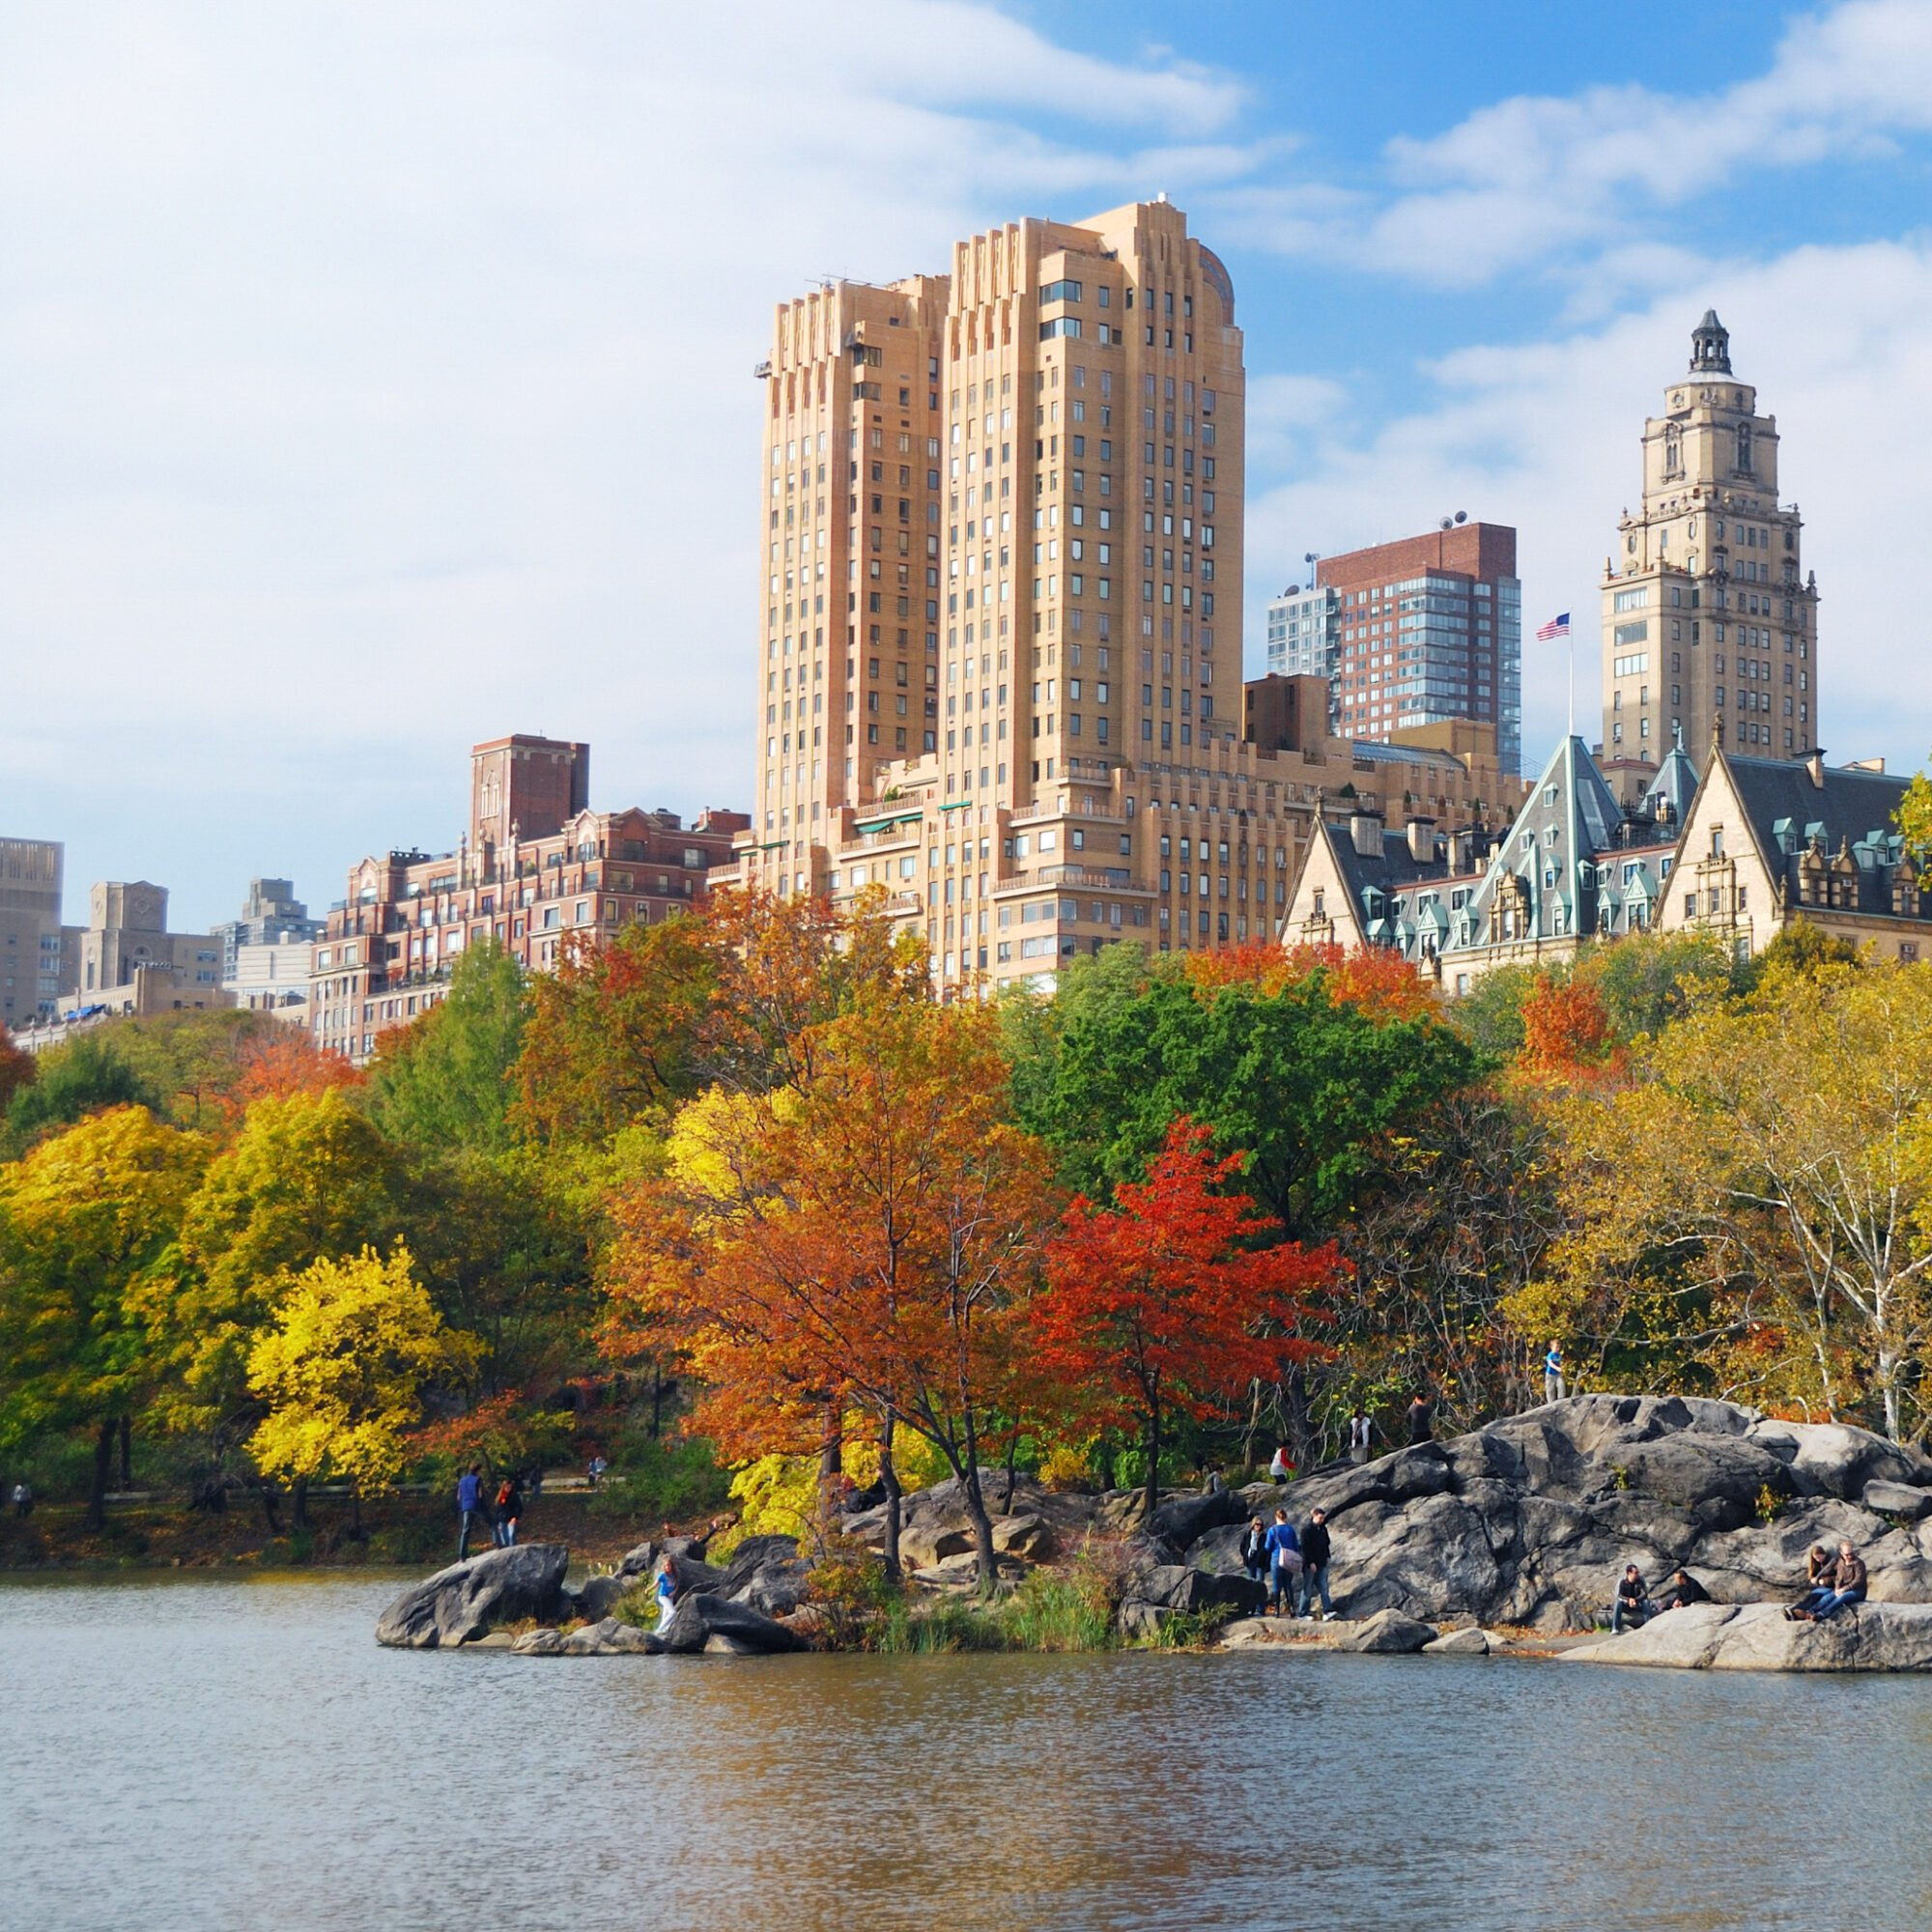 Fall foliage at Central Park in New York City.